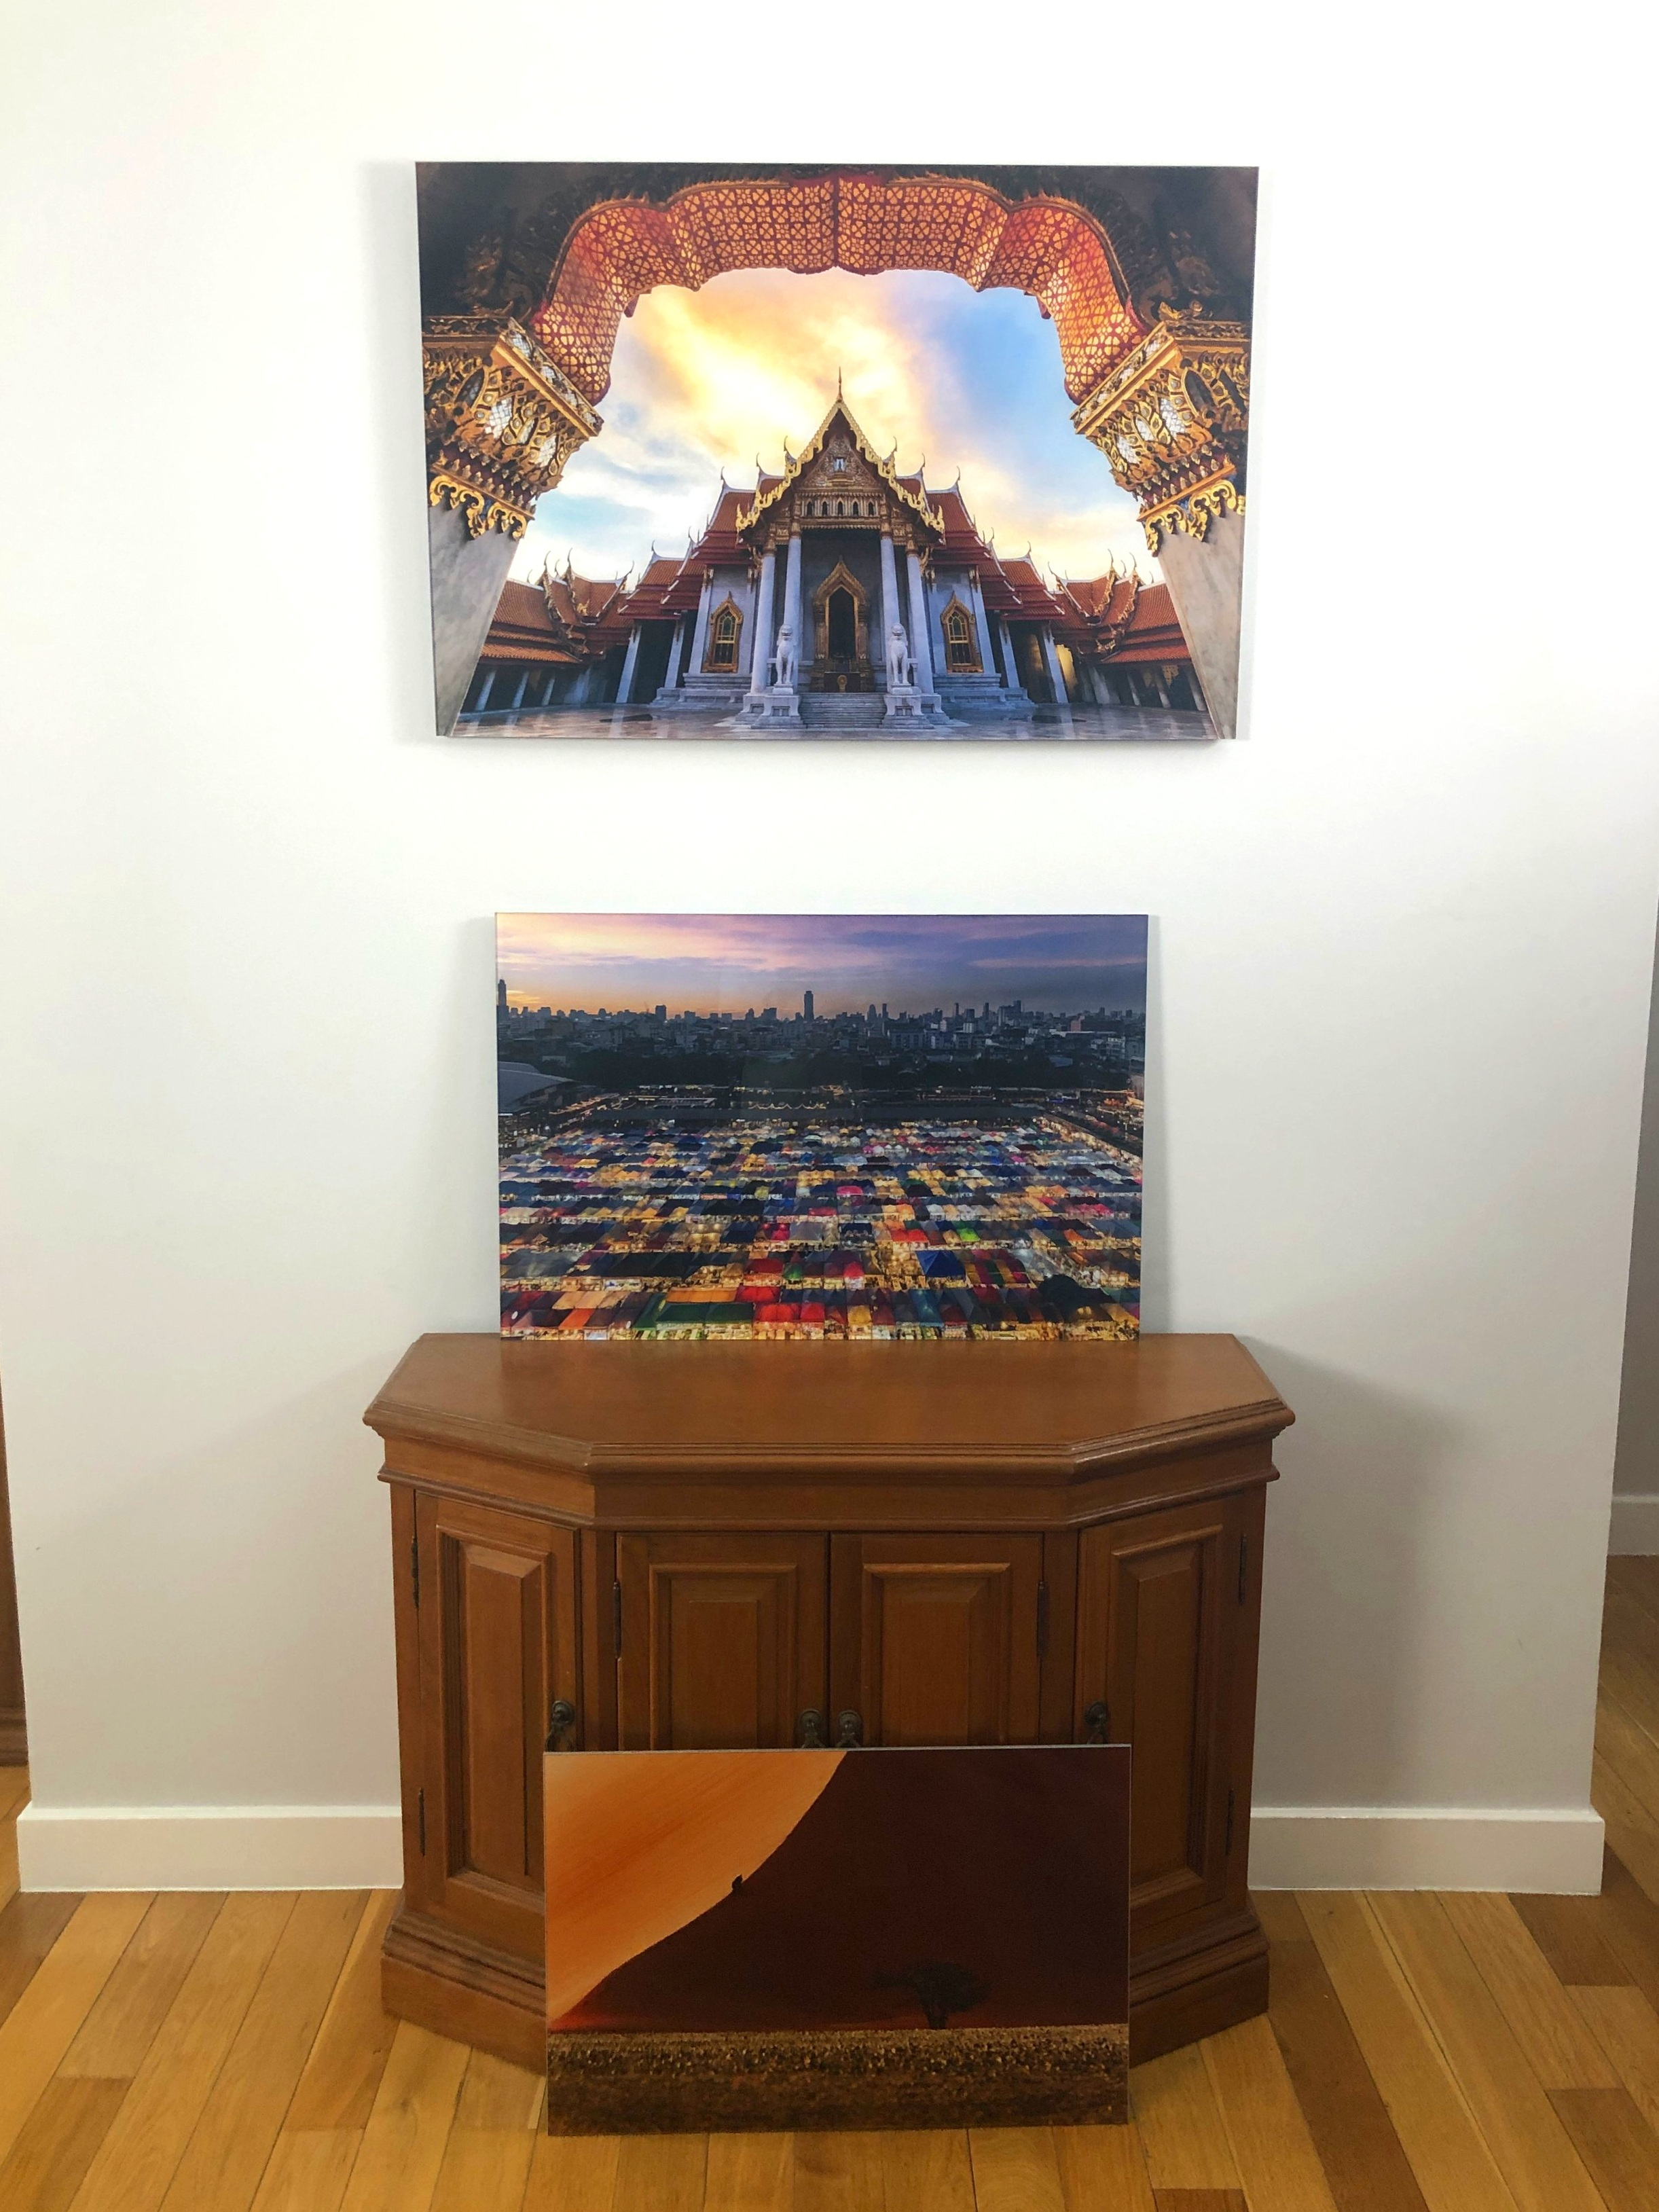 24x36 (Top), 20x30 (Middle), 16x24 (Bottom)